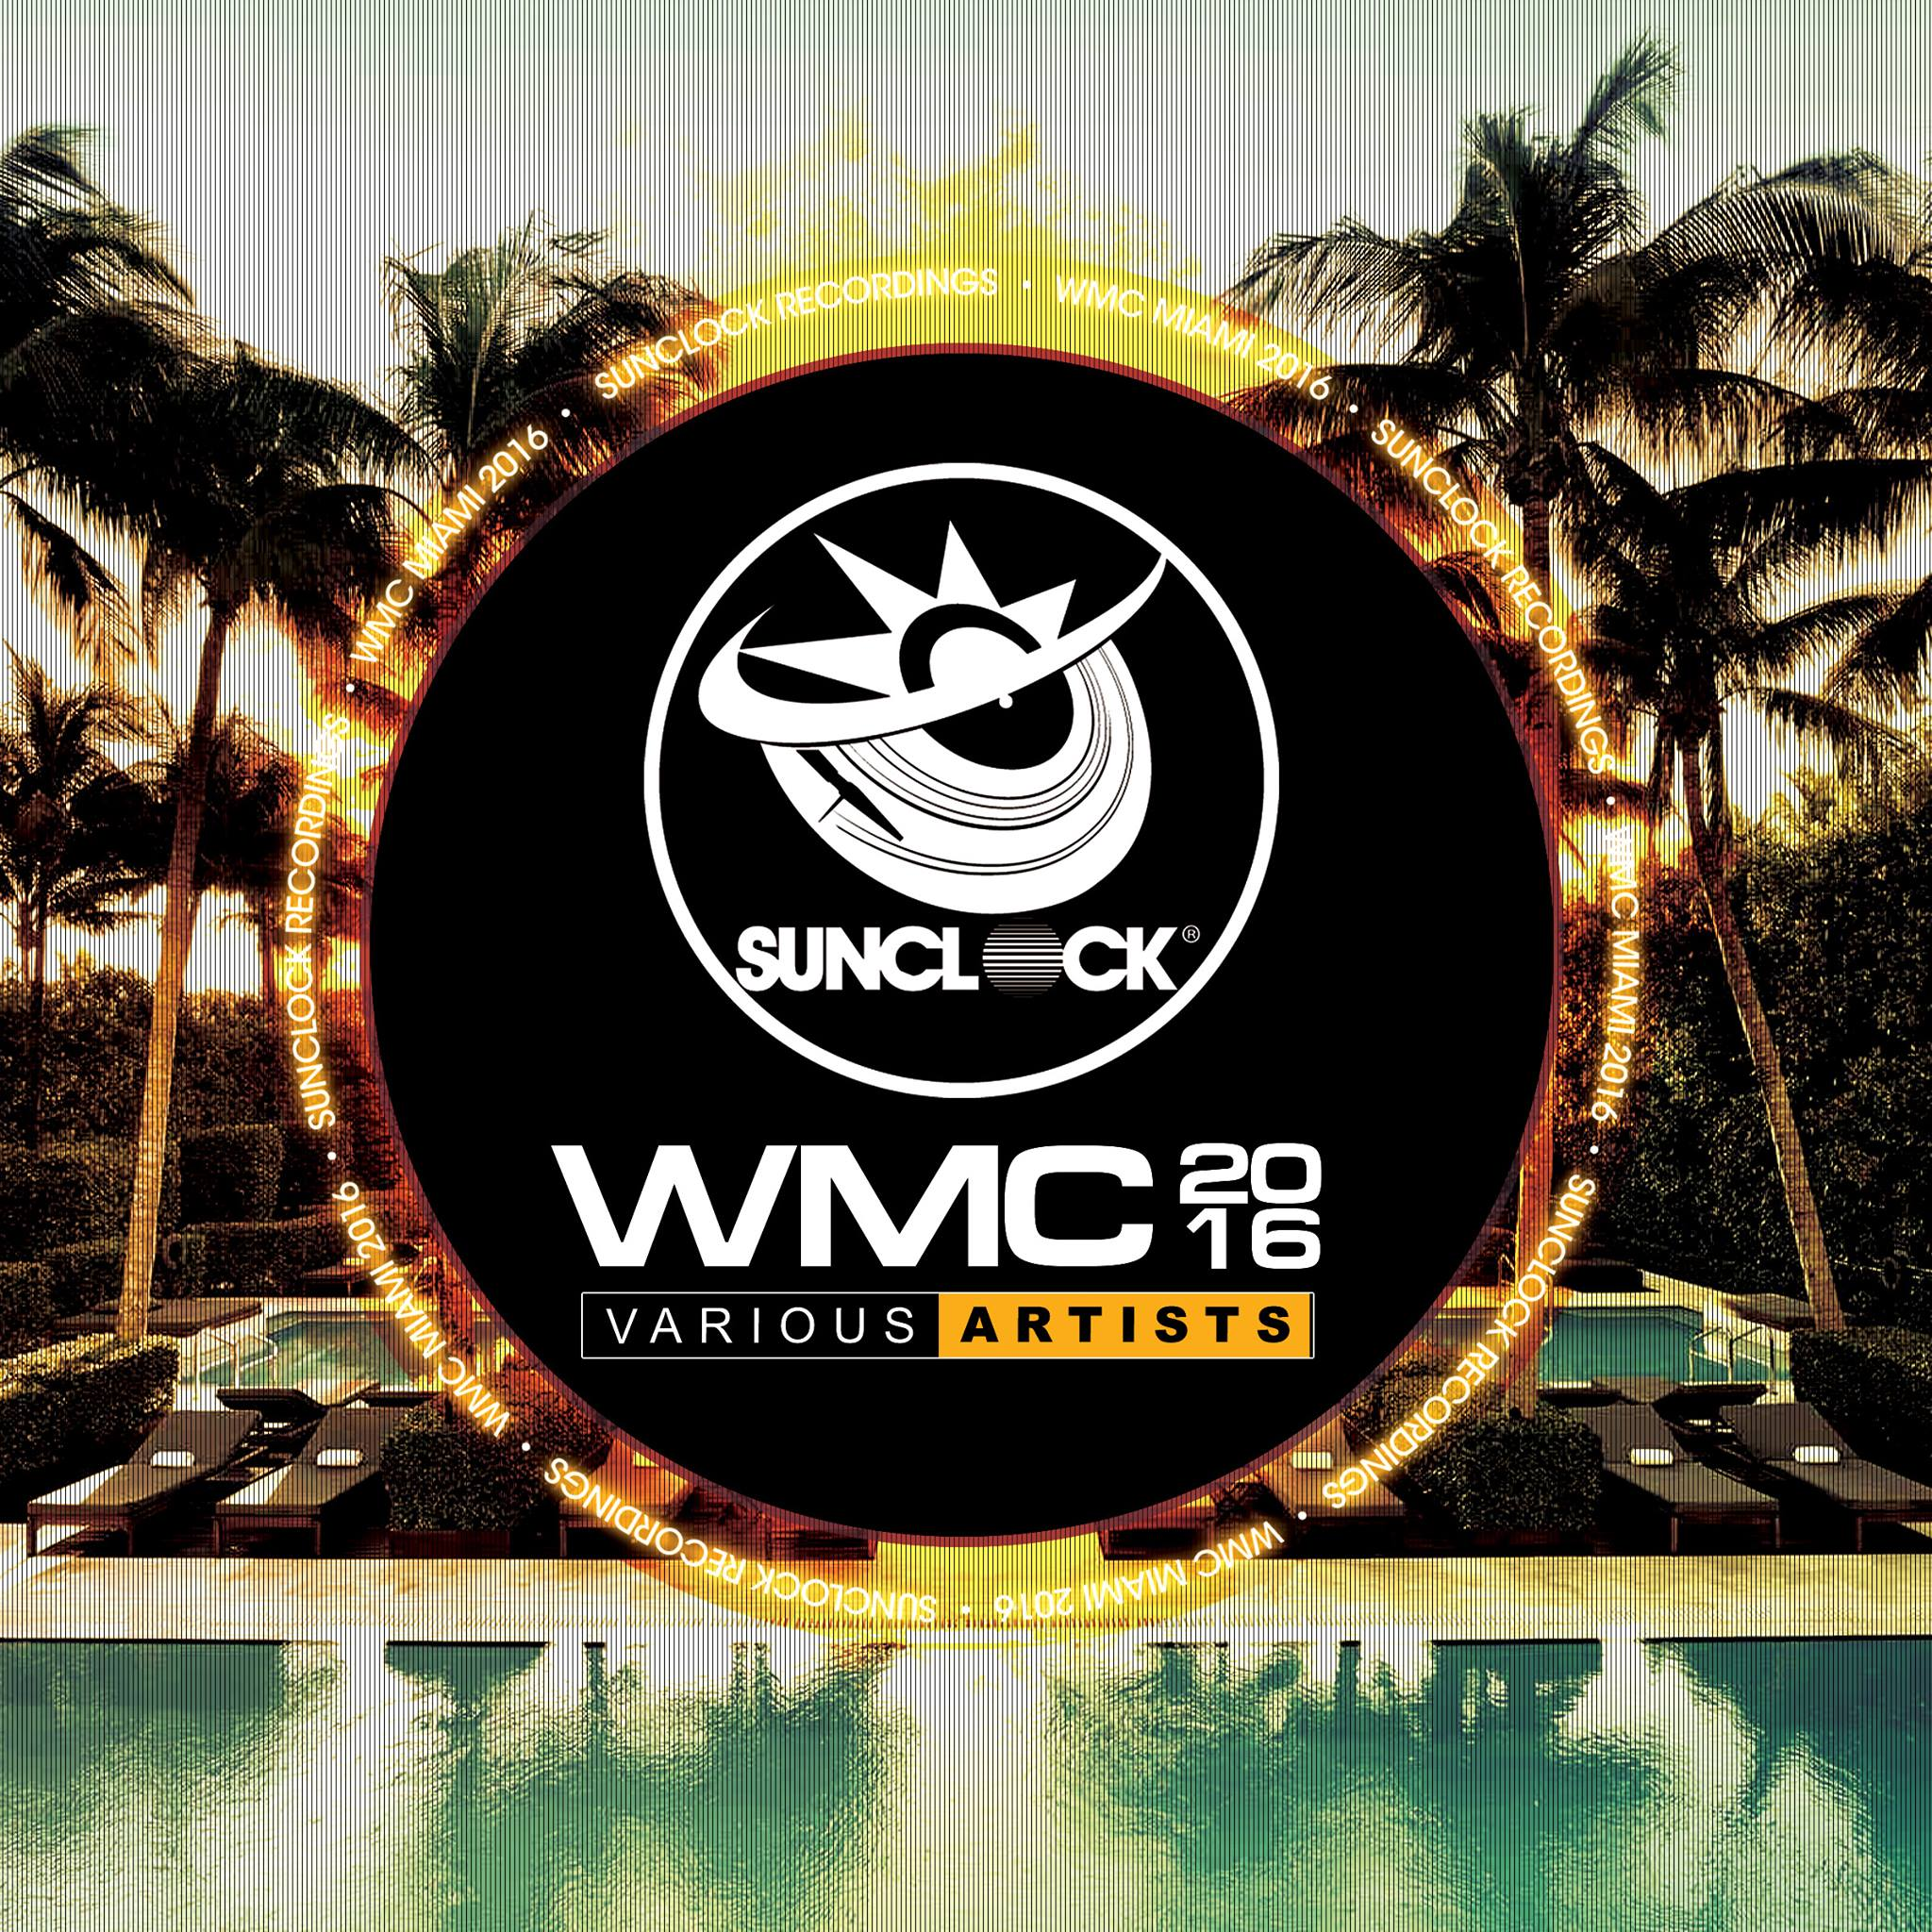 Various Artists - WMC 2016 - SNKC001 Cover